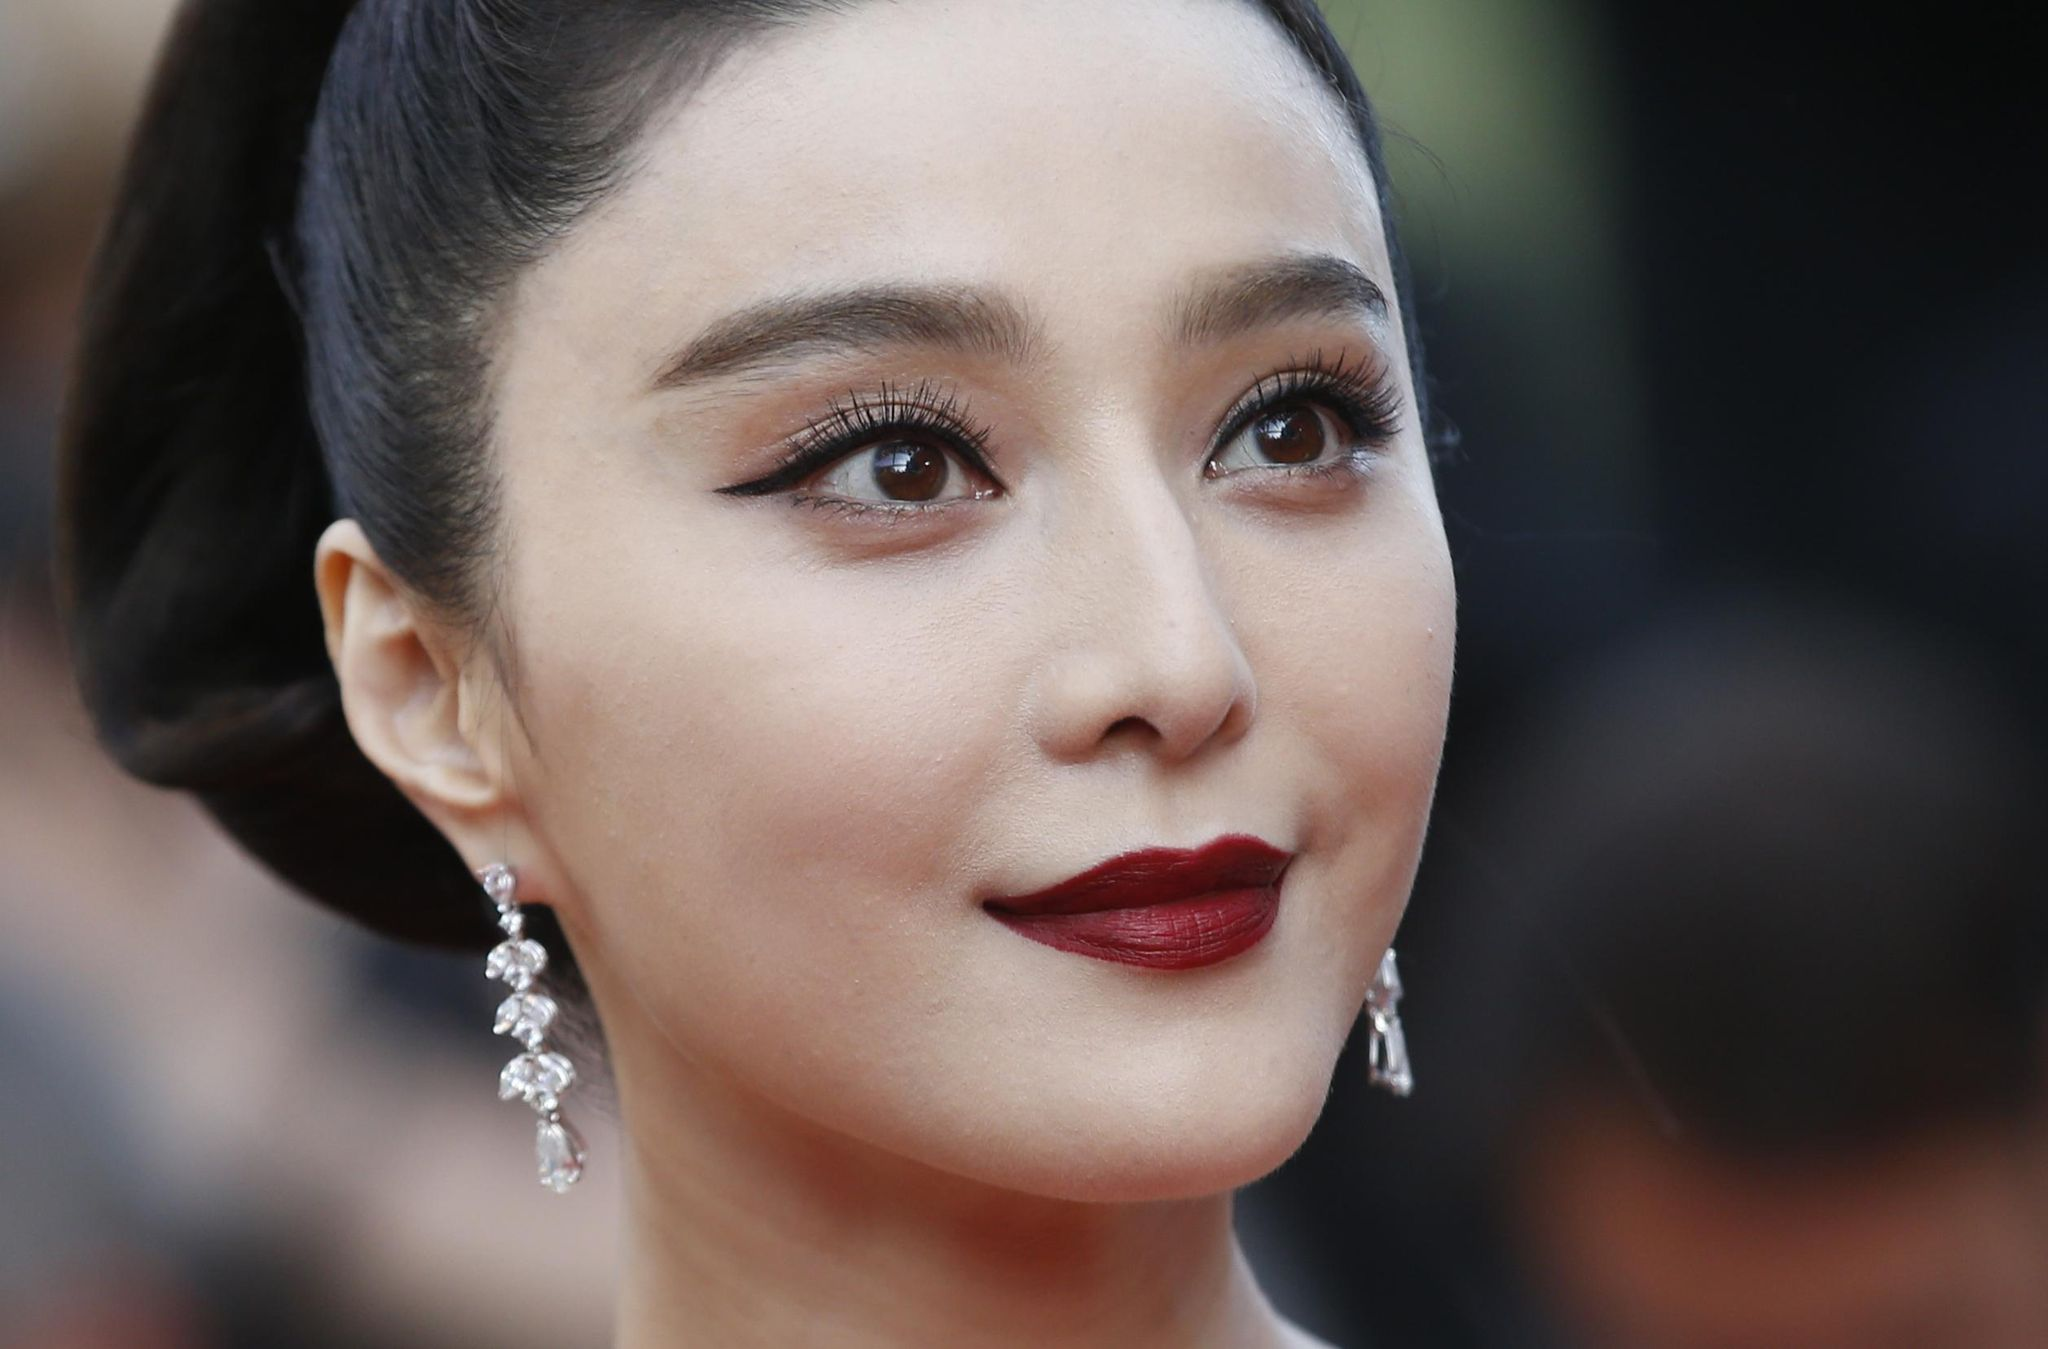 Mystery around disappearance of Chinese star Fan Bingbing - Washington Times